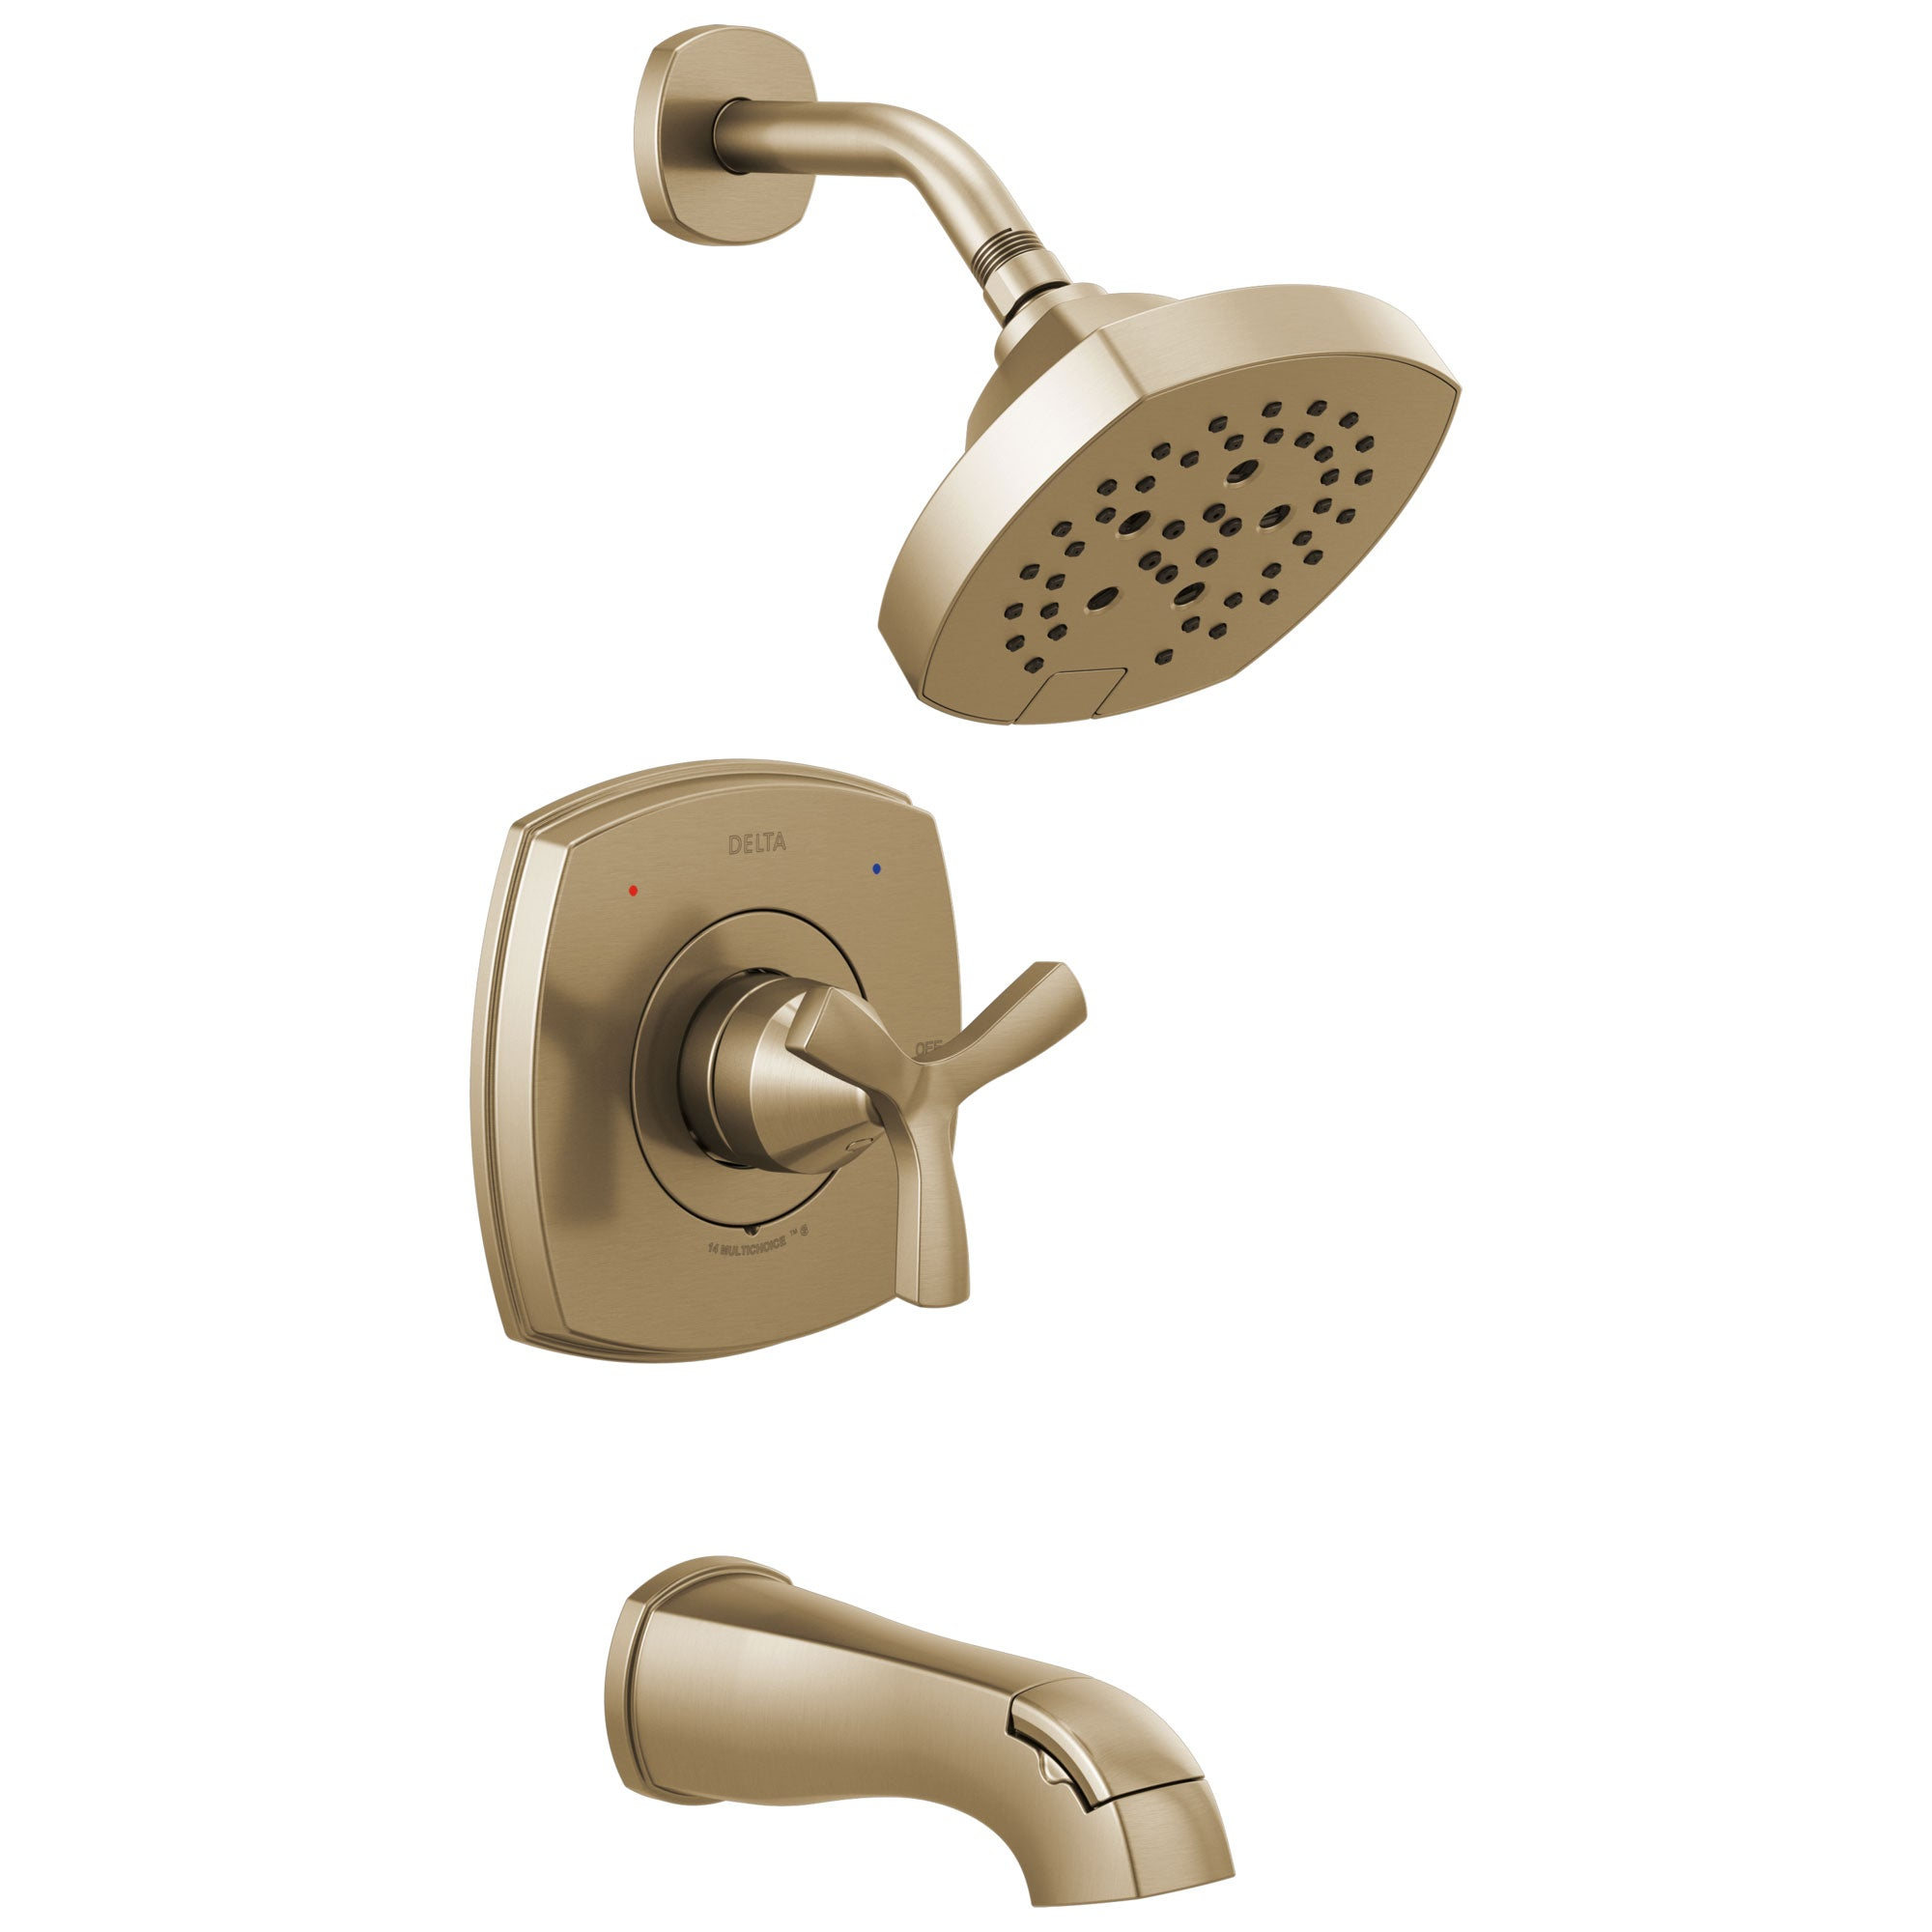 Delta Stryke Champagne Bronze Finish 14 Series Tub and Shower Combination Faucet Includes Helo Cross Handle, Cartridge, and Valve with Stops D3438V